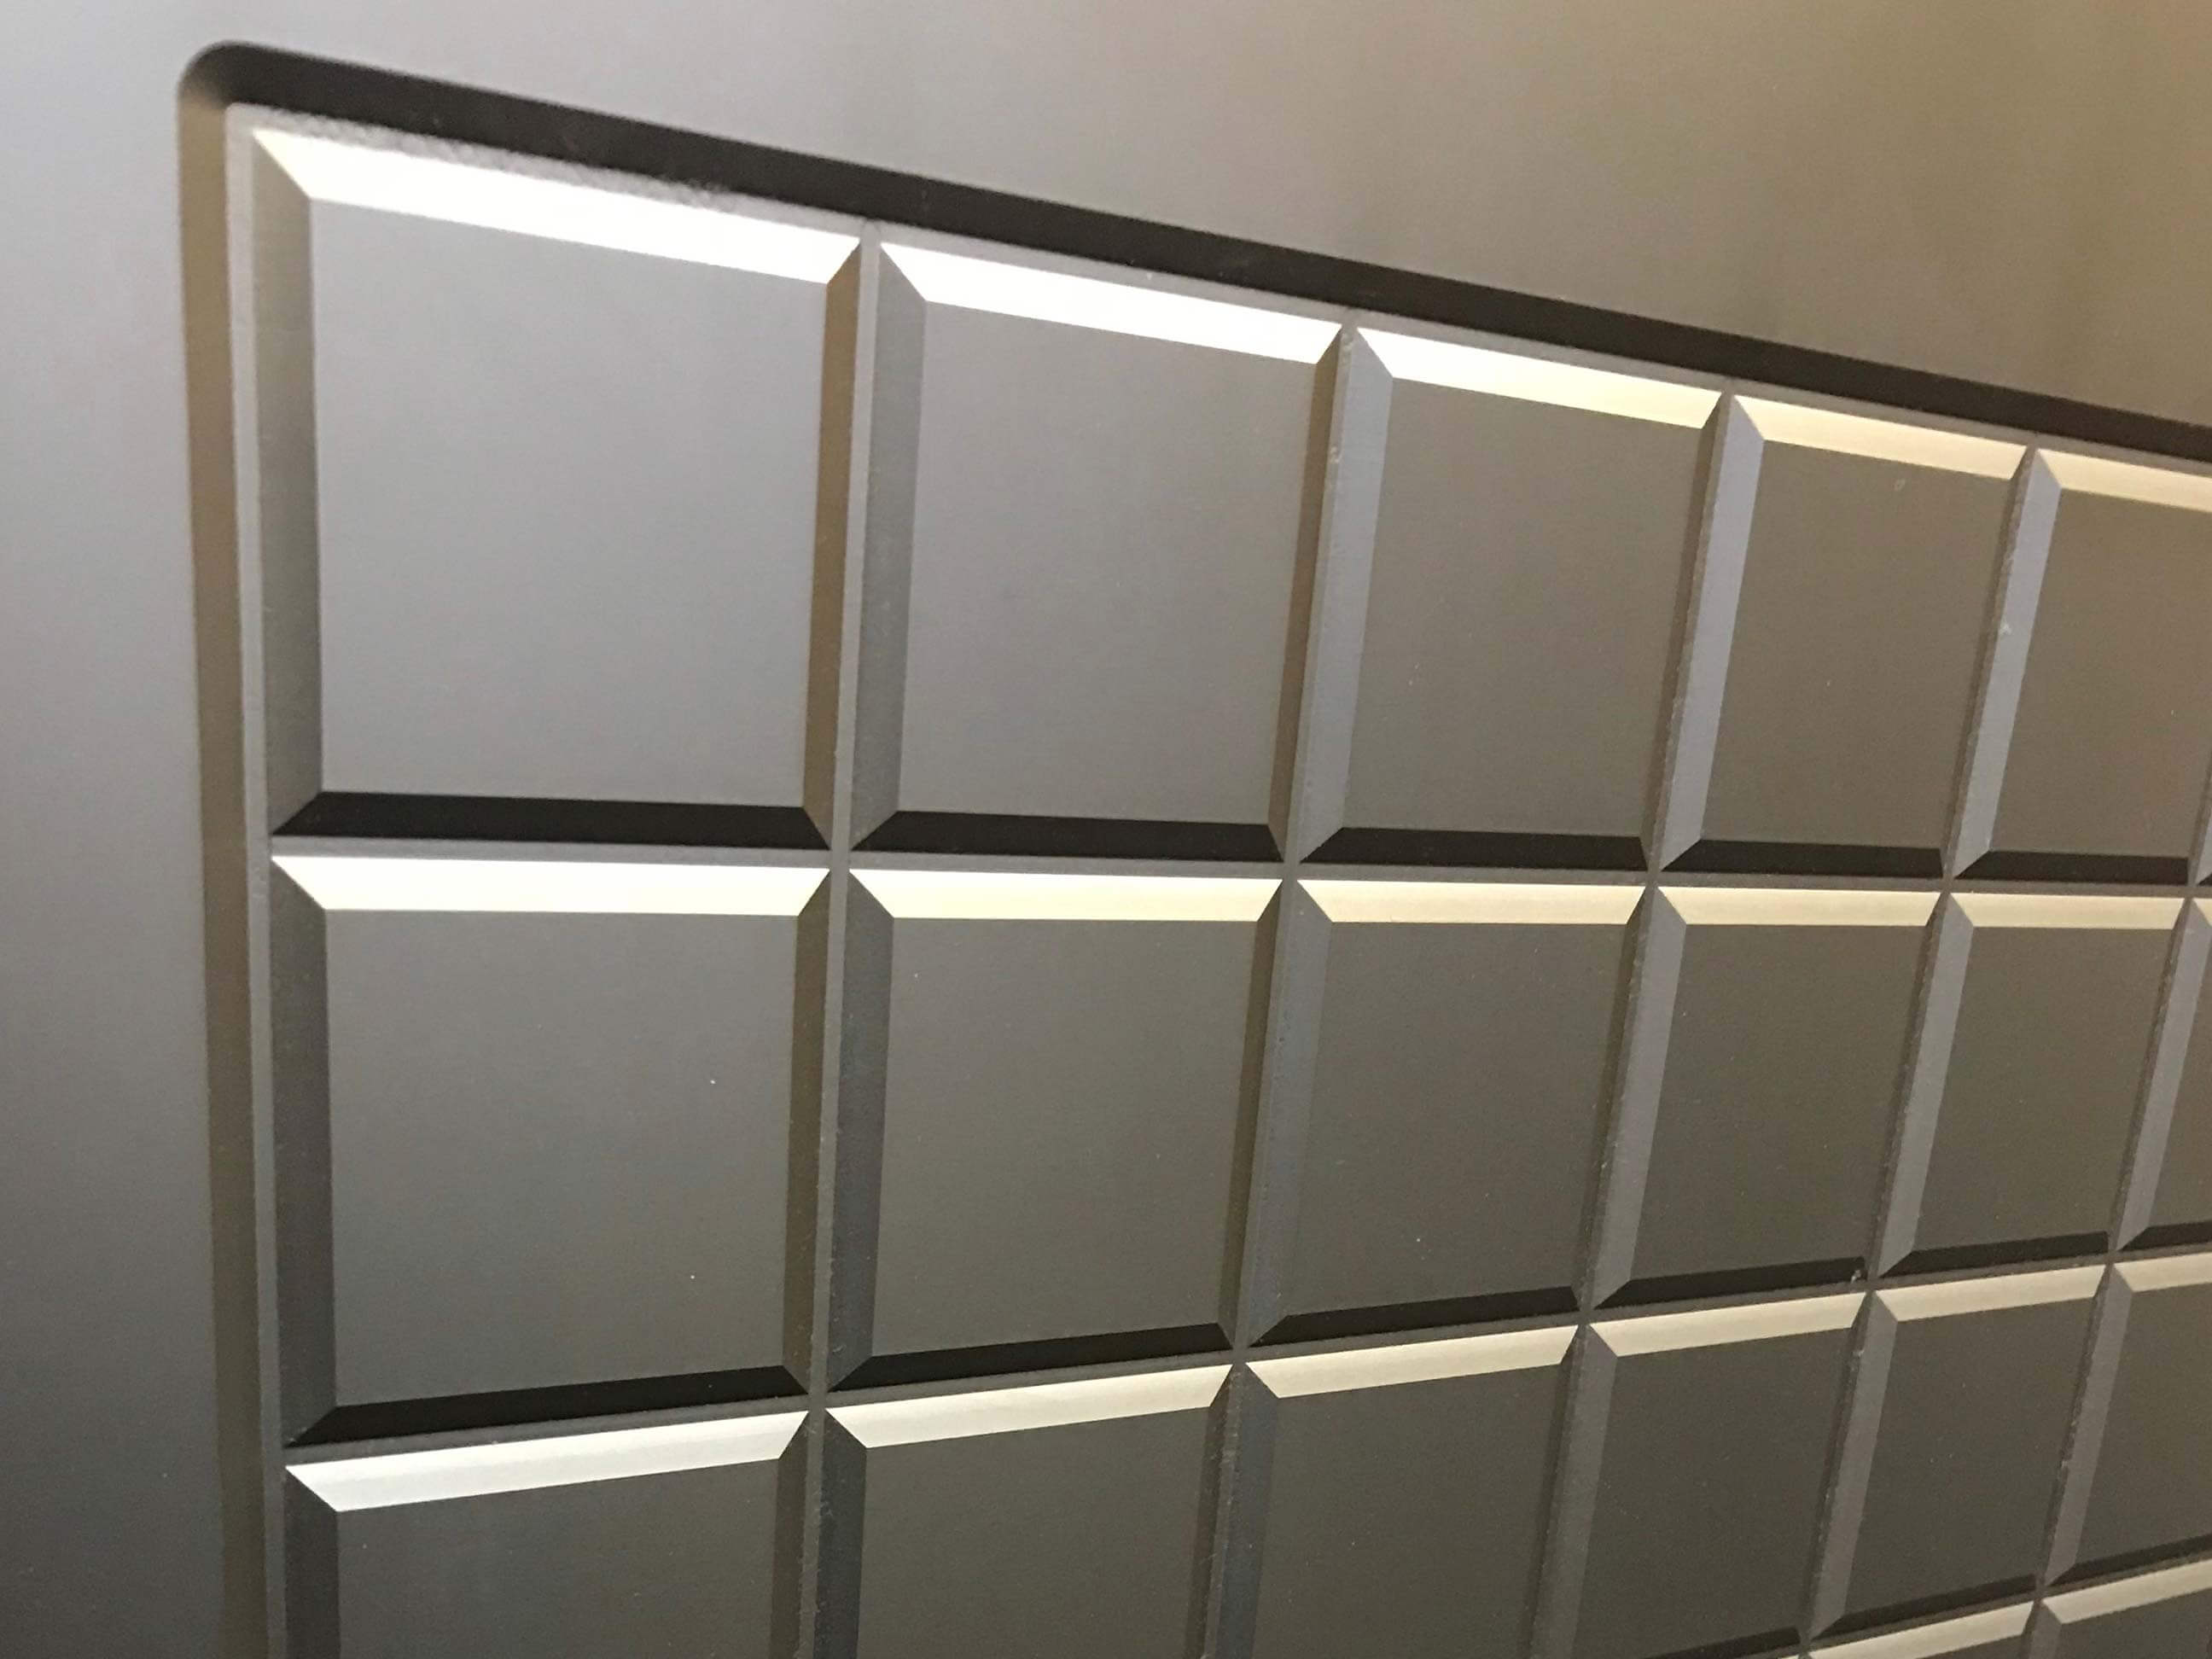 FX Rainscreen and Insulated Panels